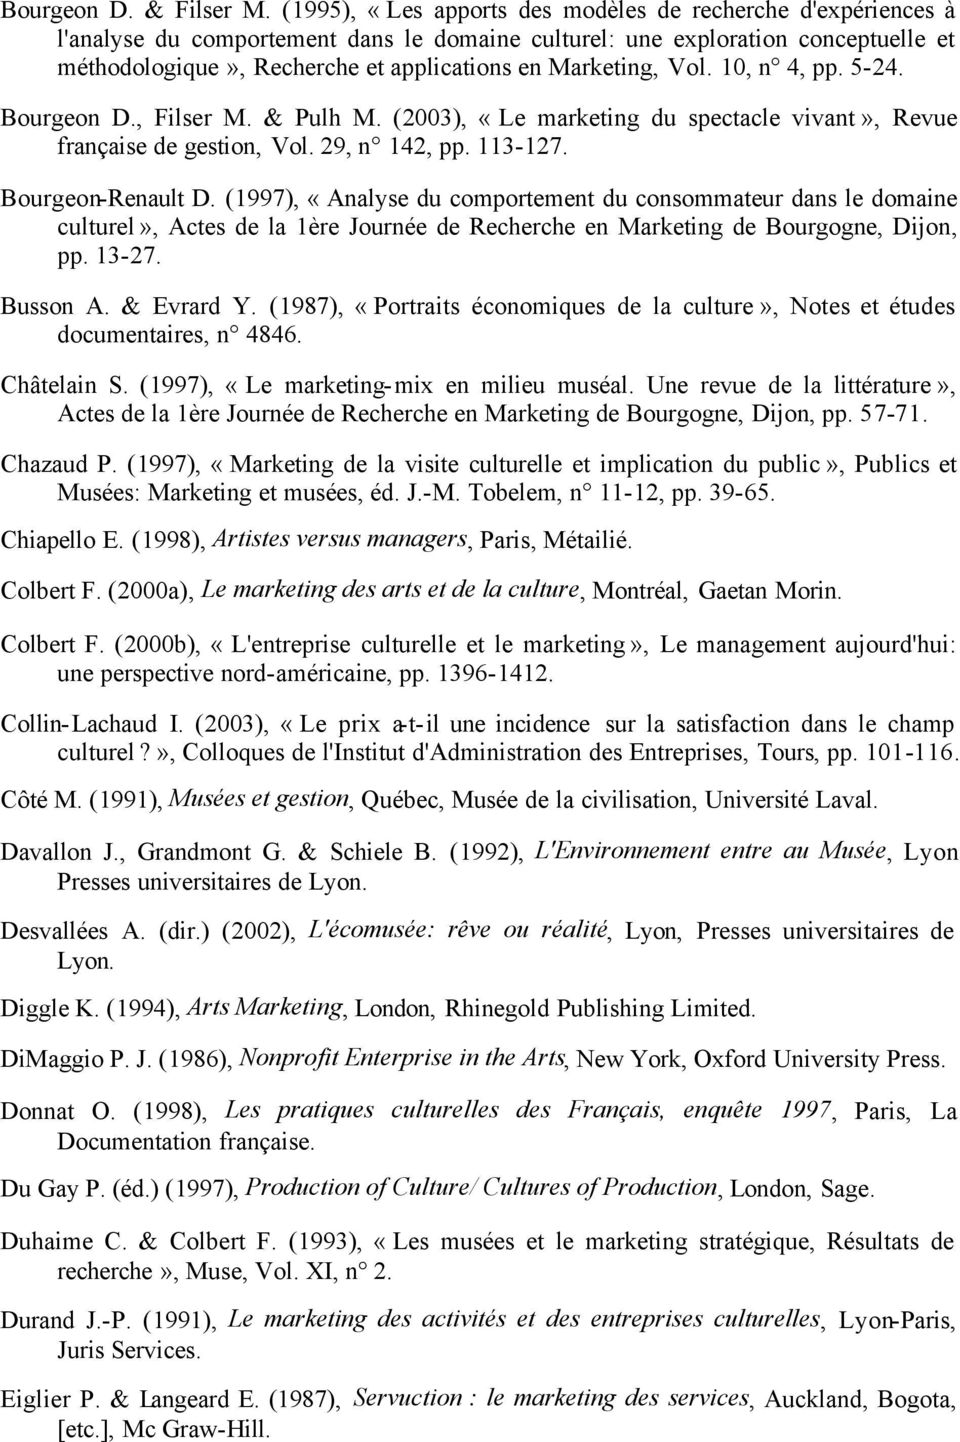 Marketing, Vol. 10, n 4, pp. 5-24. Bourgeon D., Filser M. & Pulh M. (2003), «Le marketing du spectacle vivant», Revue française de gestion, Vol. 29, n 142, pp. 113-127. Bourgeon-Renault D.